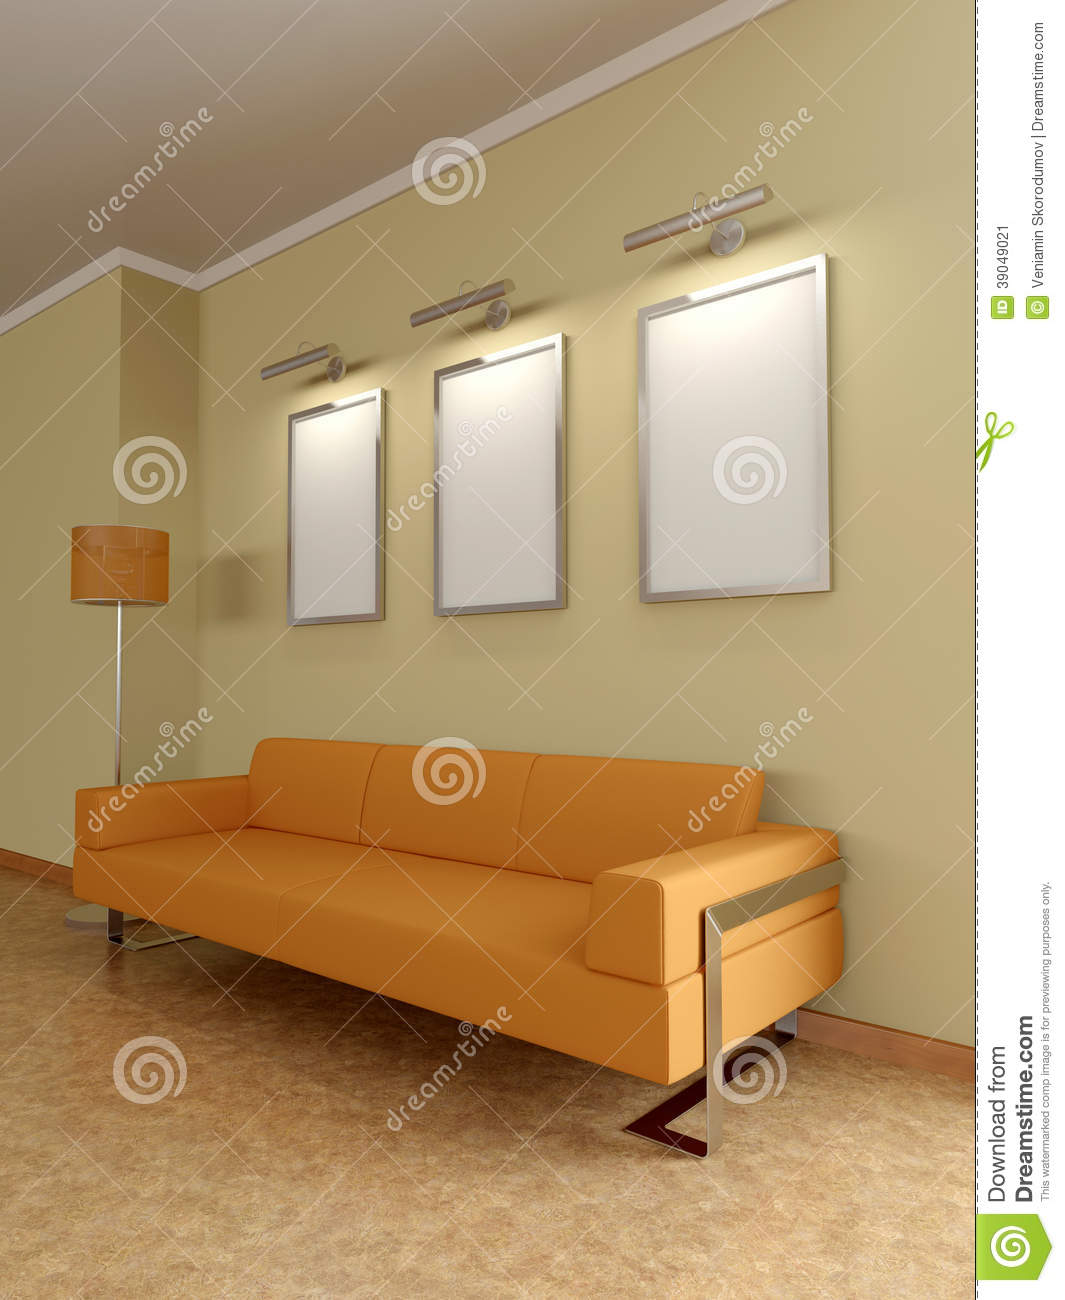 Modern home interior with sofa paintings 3d stock - Peinture maison interieur photo ...